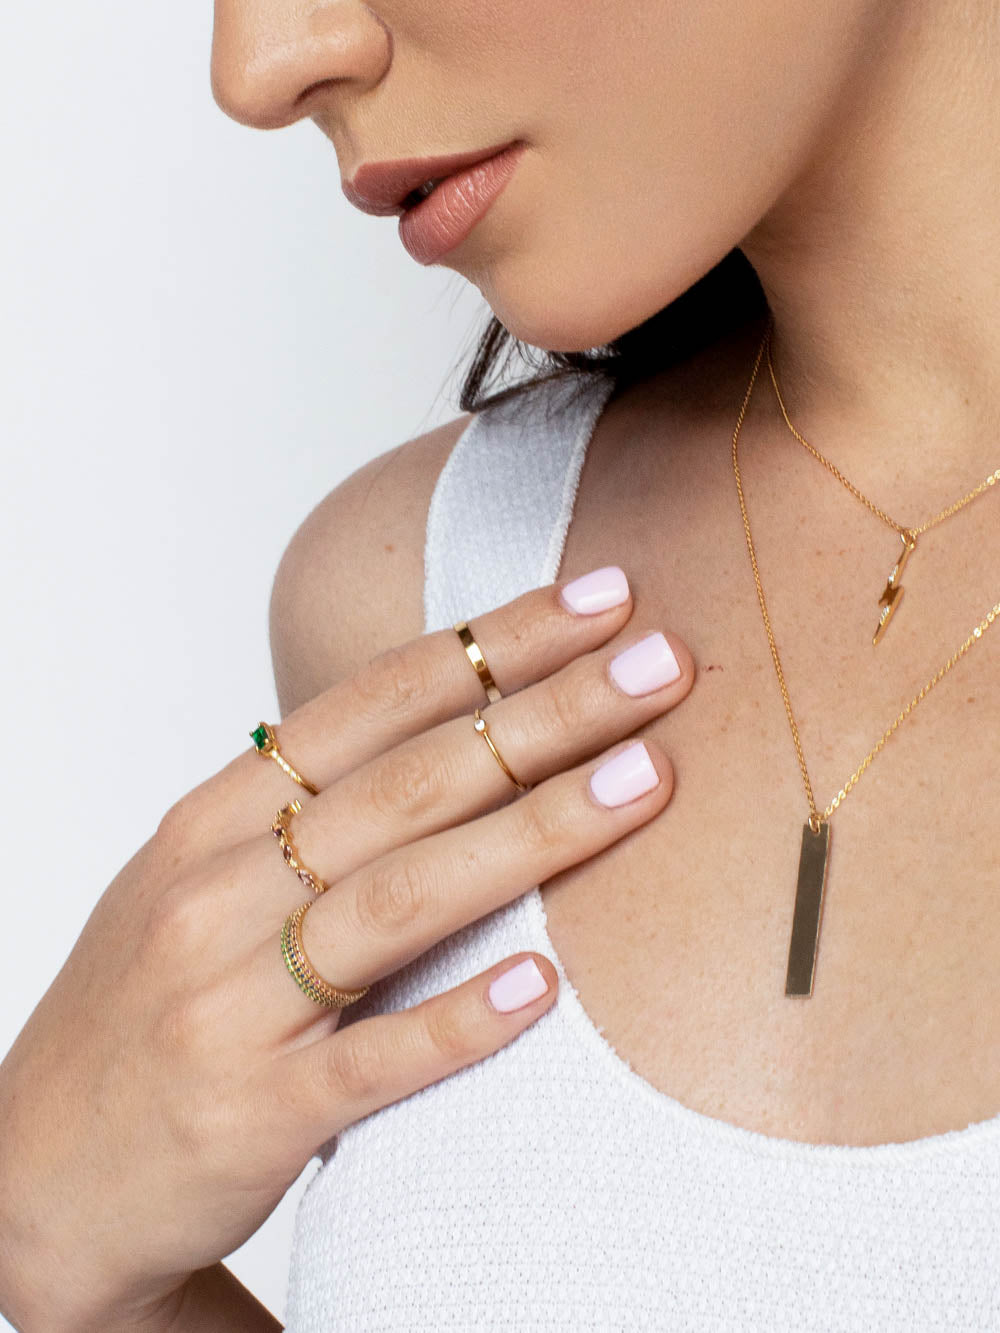 Bolt Charm Necklace Gold by The Faint Hearted Jewelry